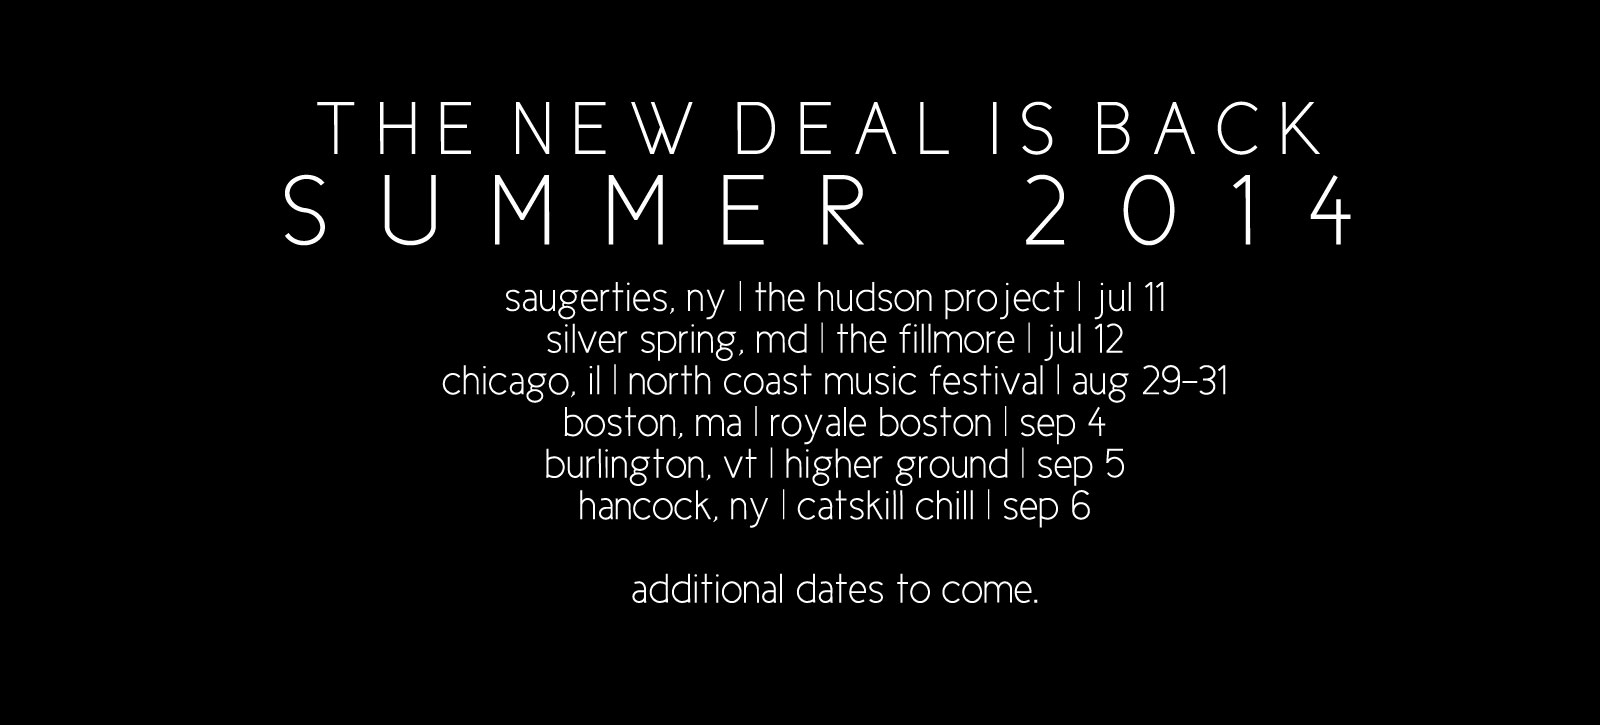 the new deal tour dates summer 2014